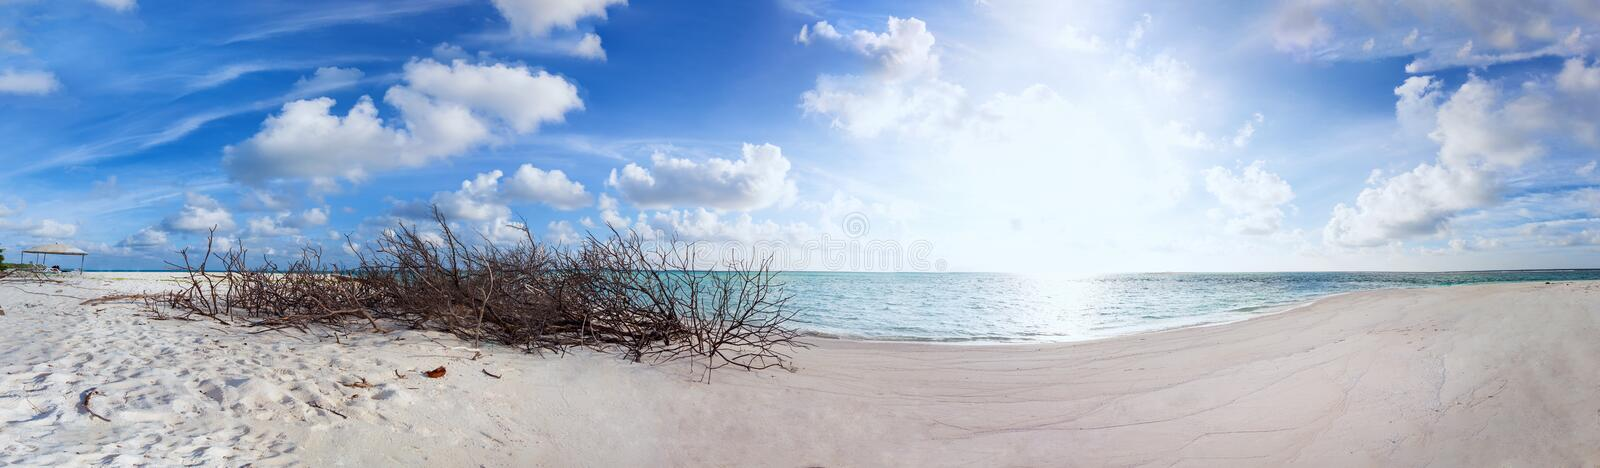 Panorama of Abandoned Beach at Maldives island Fulhadhoo with white sandy beach and sea. Panorama Wild Beach at Maldives island Fulhadhoo with white sandy beach royalty free stock photo